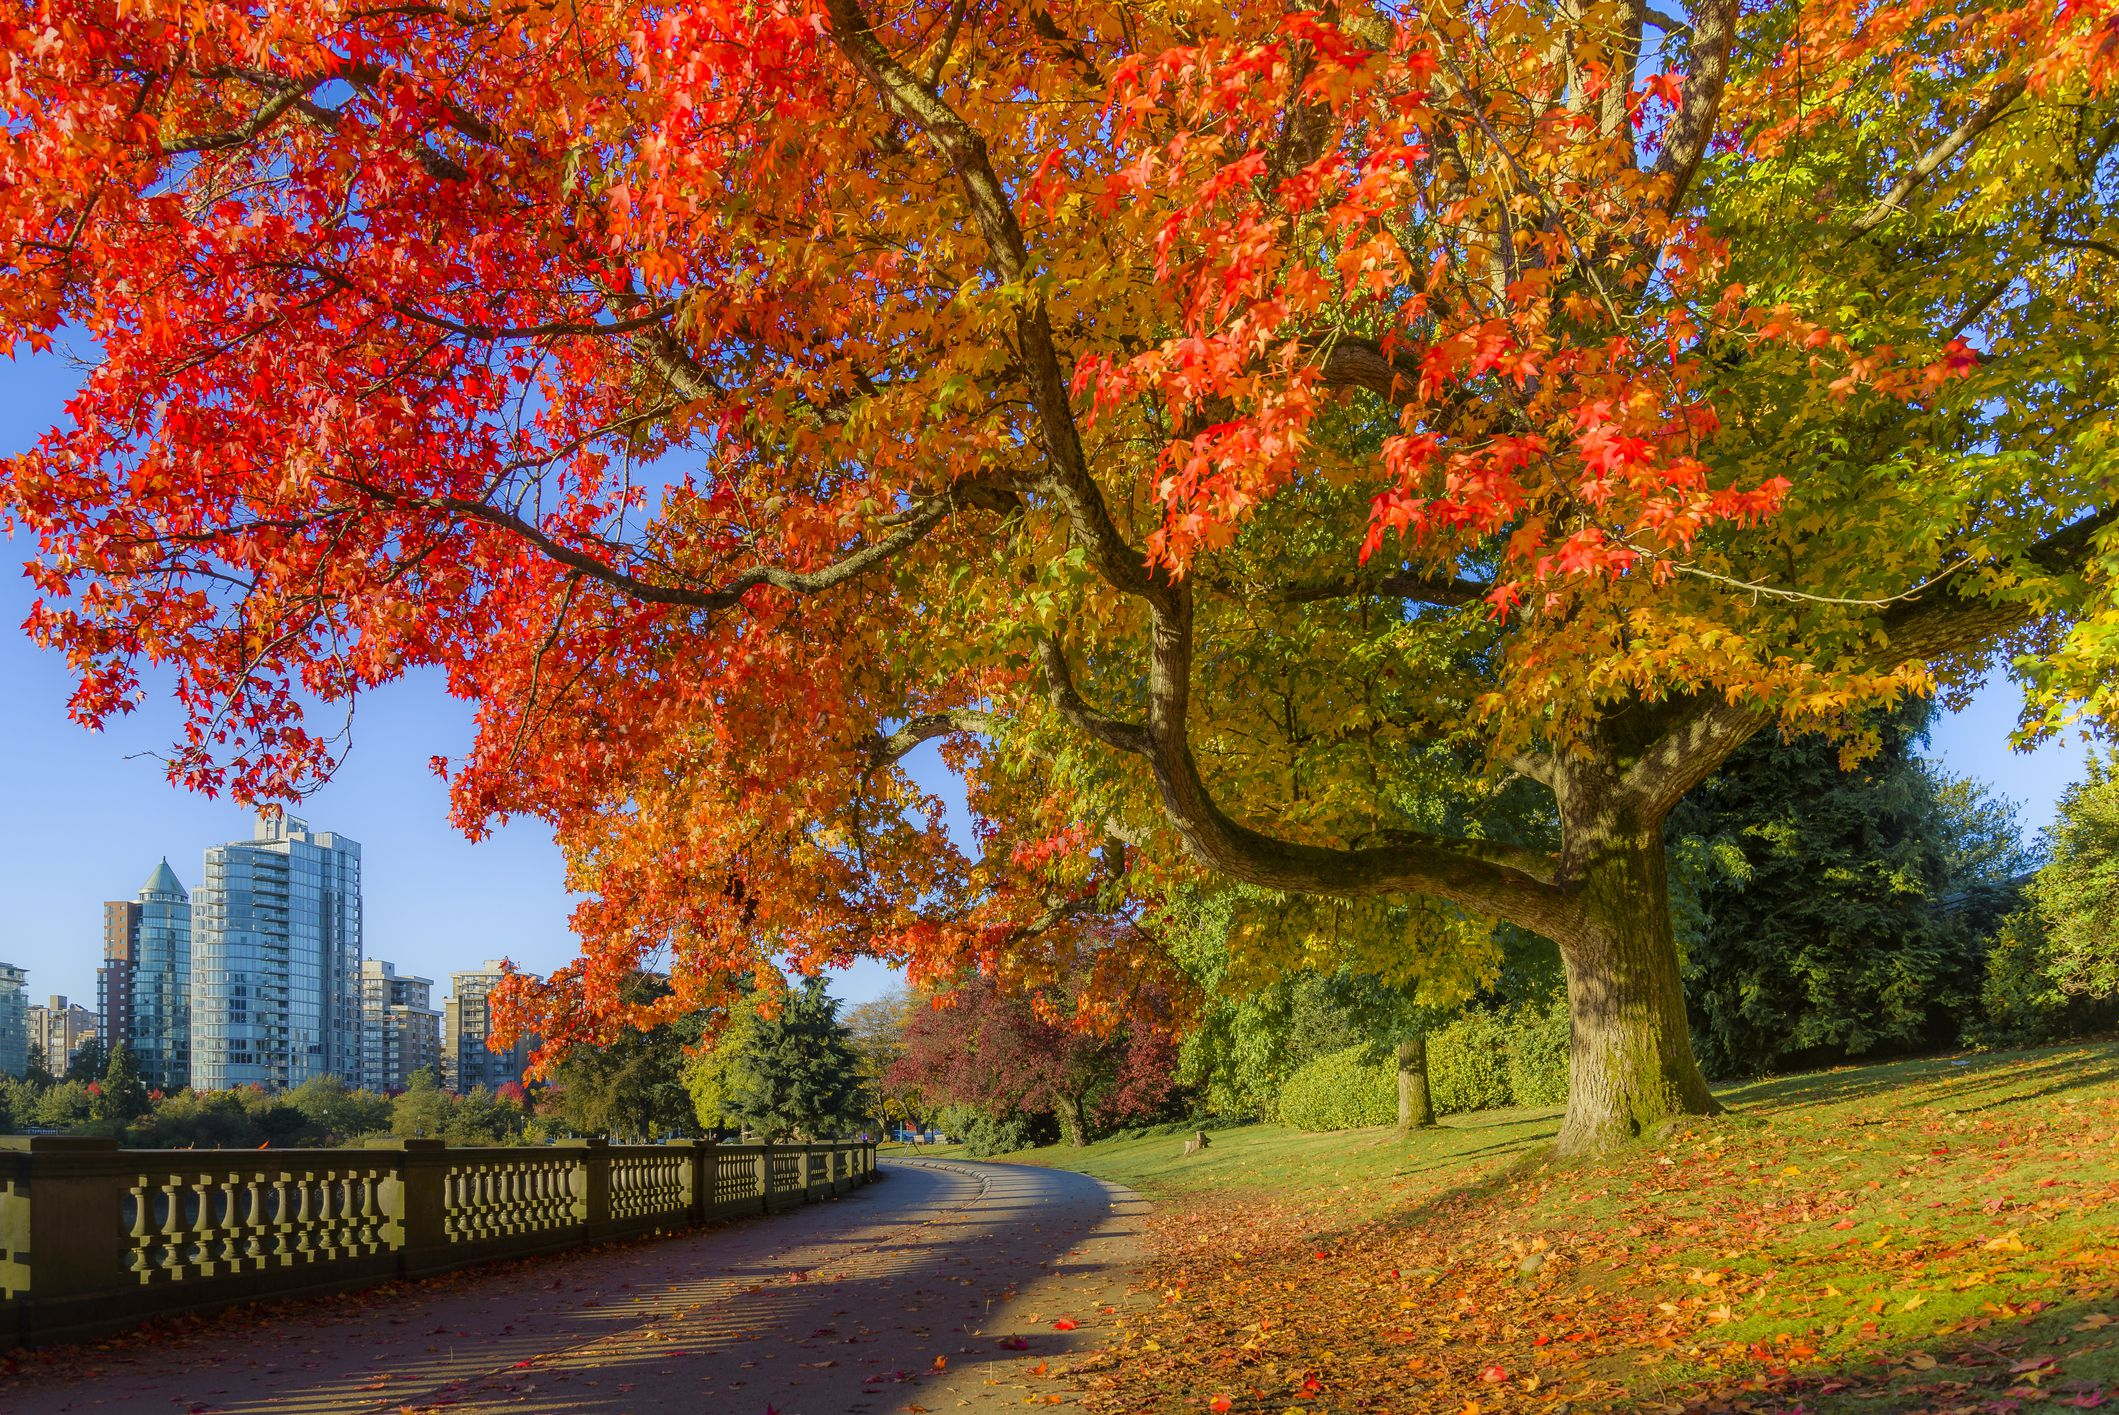 fall colour stanley park seawall vancouver british columbia canada 5a77c1c8642dca0037b05a39